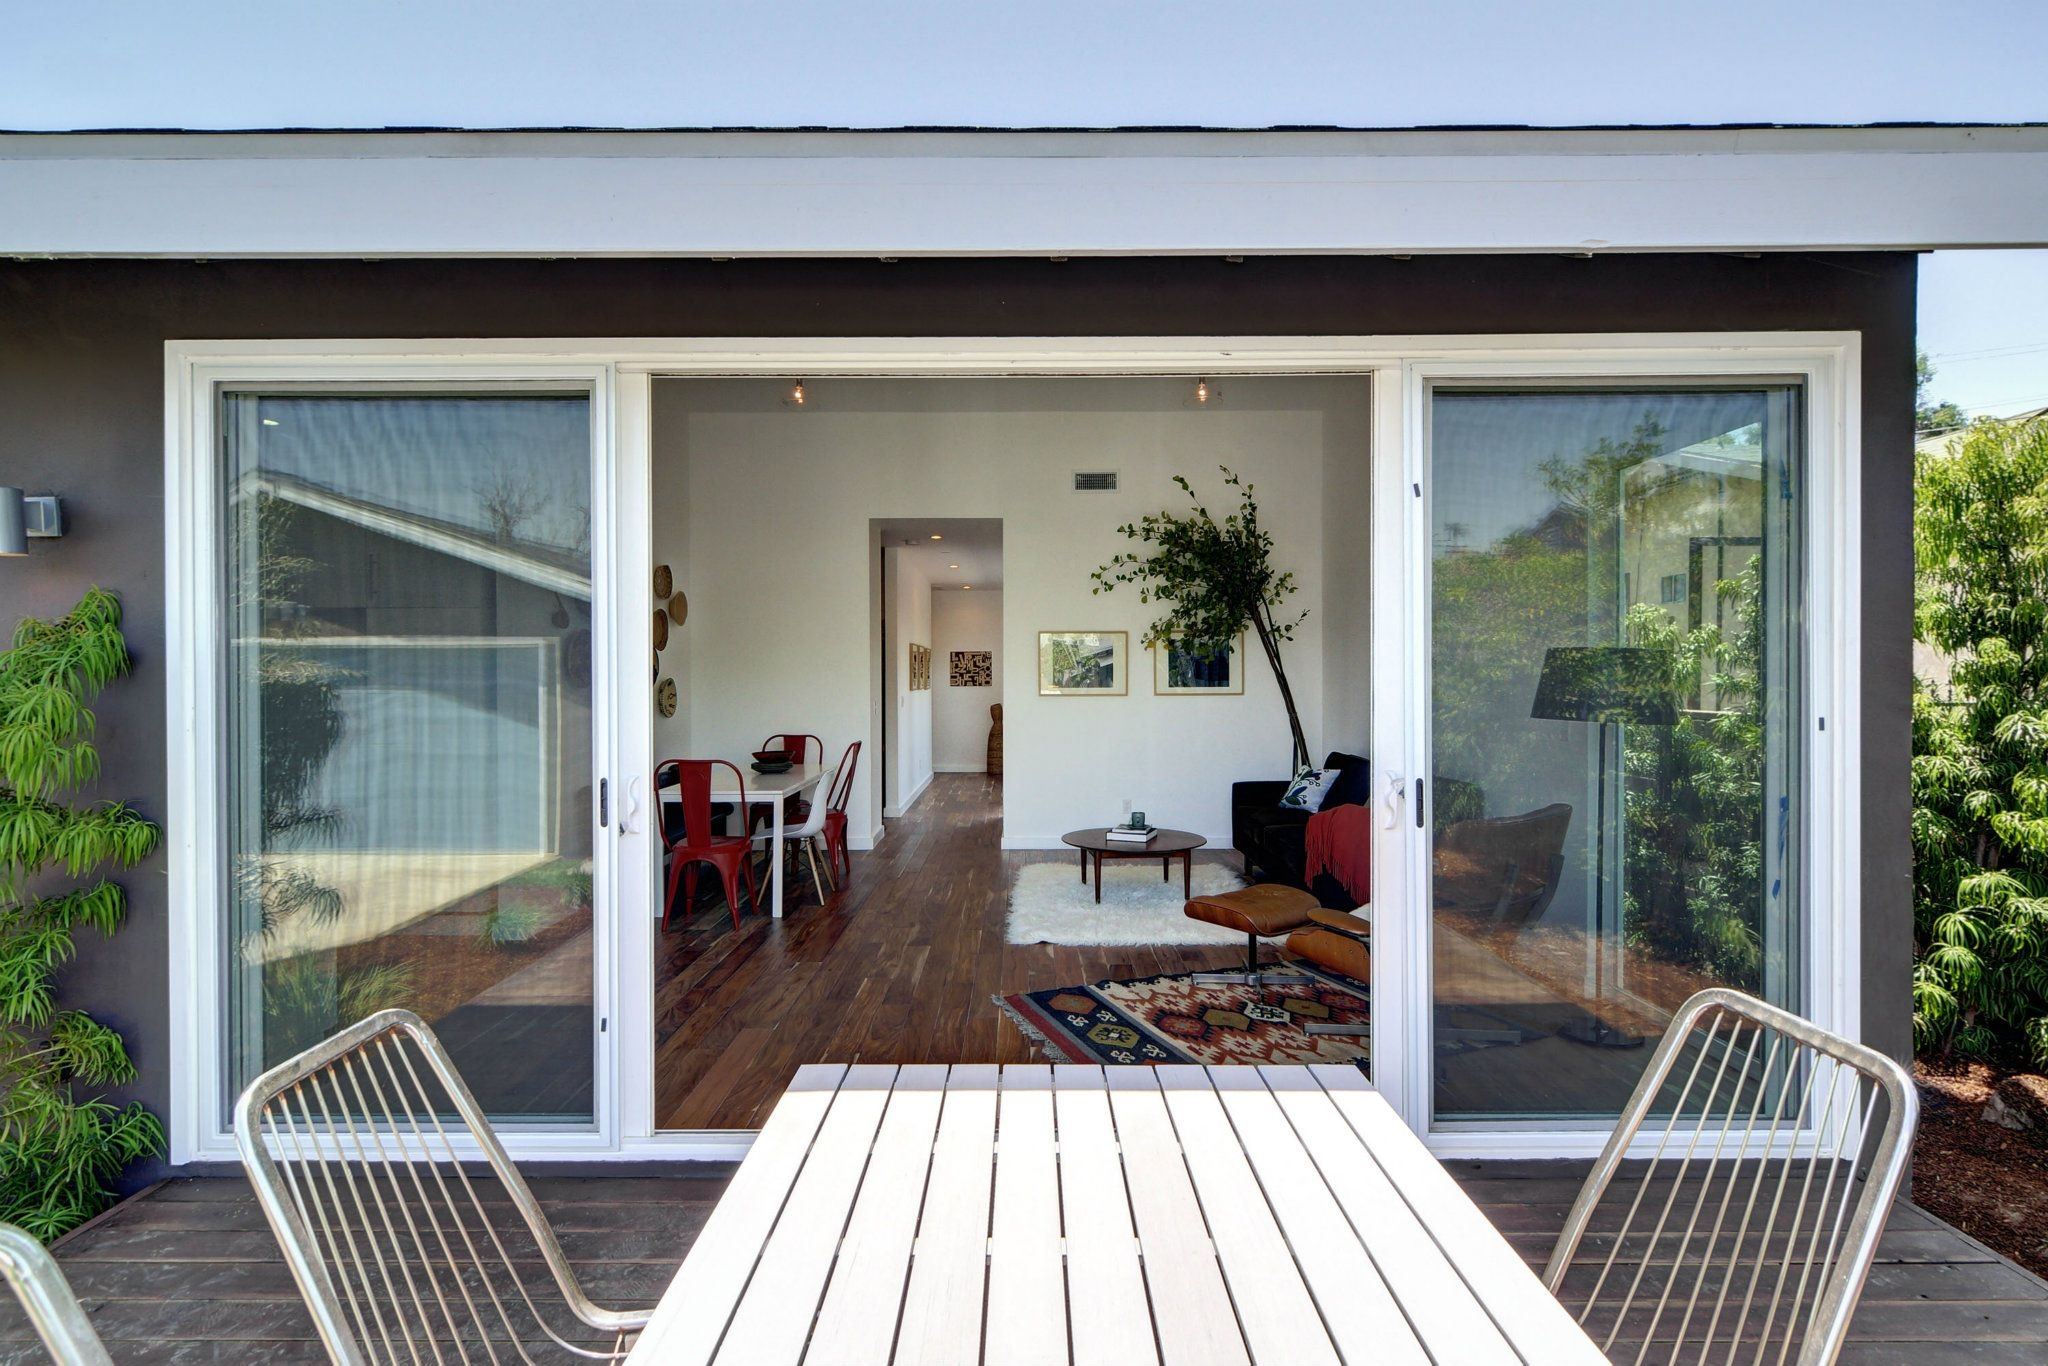 Metal Sliding Glass Patio DoorsMetal Sliding Glass Patio Doors